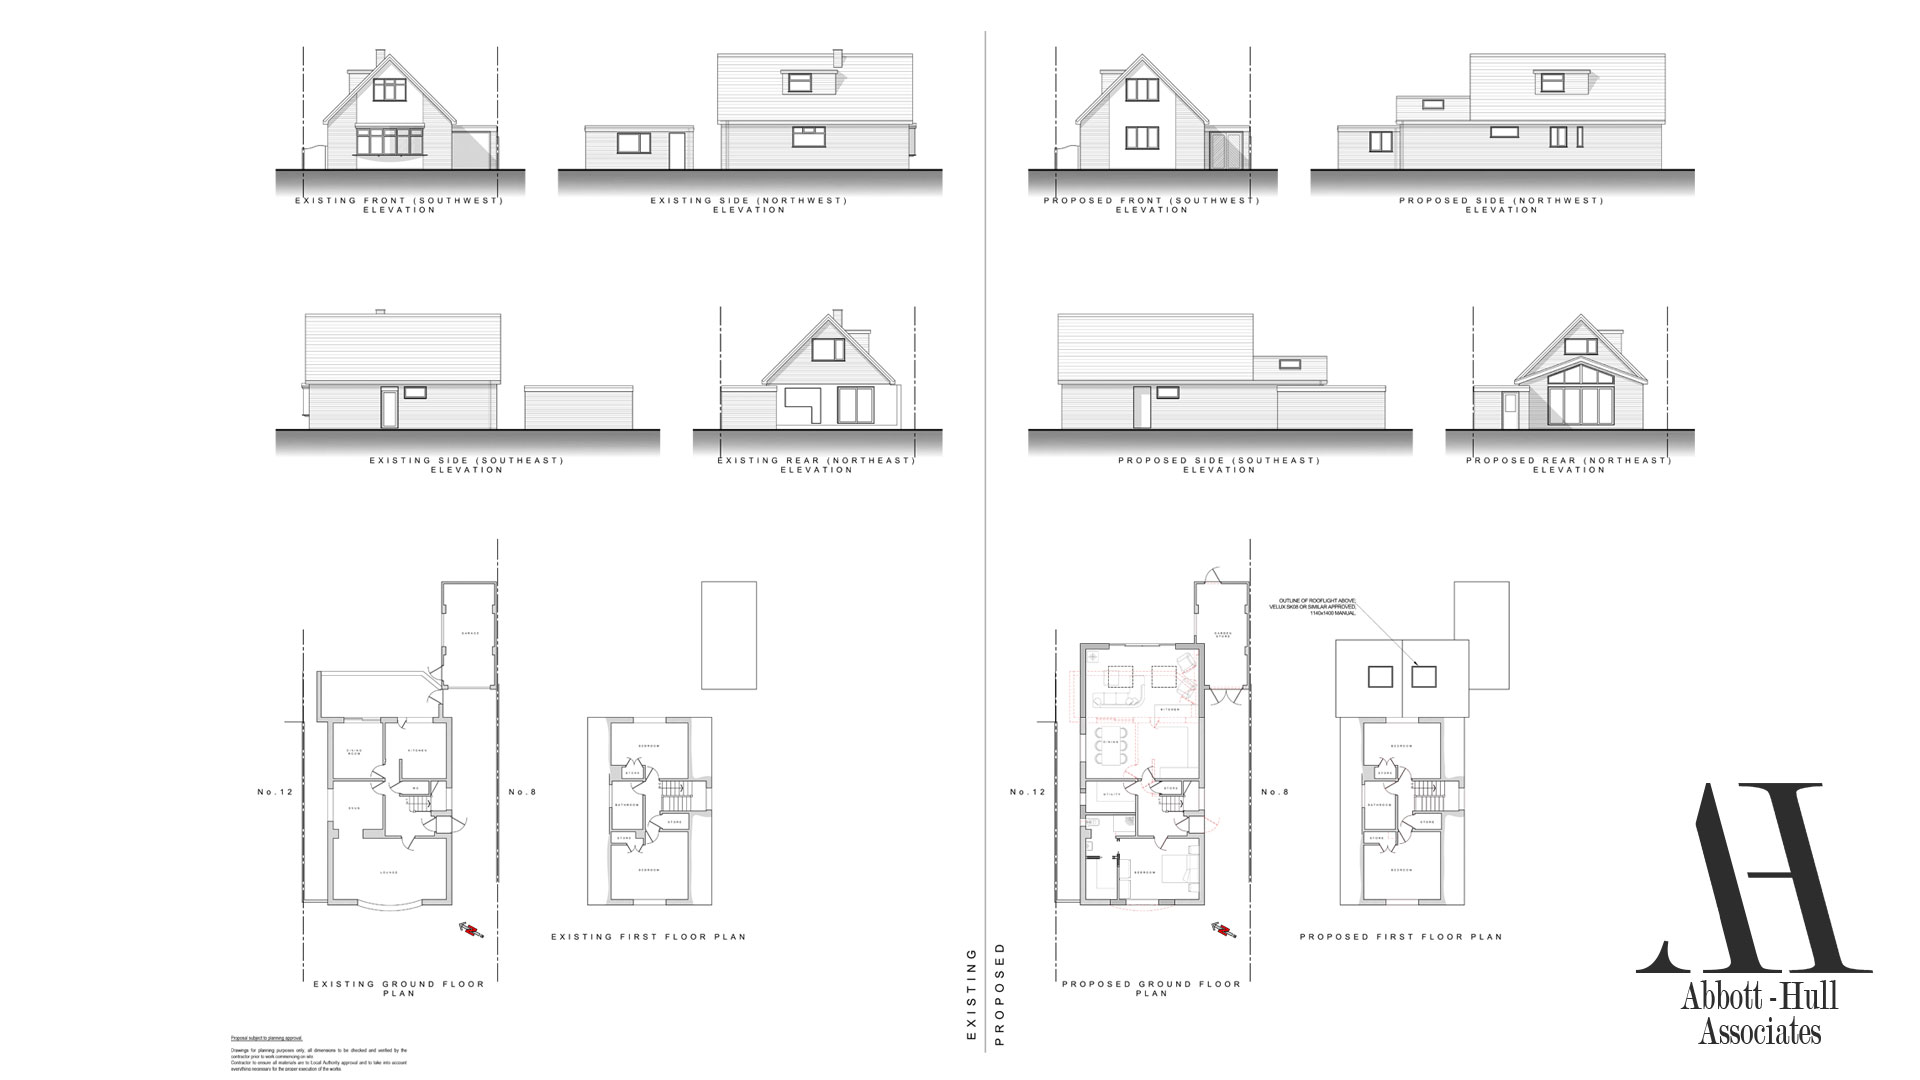 10 Oakwood Avenue, Lytham St. Annes - Existing and Proposed Plans